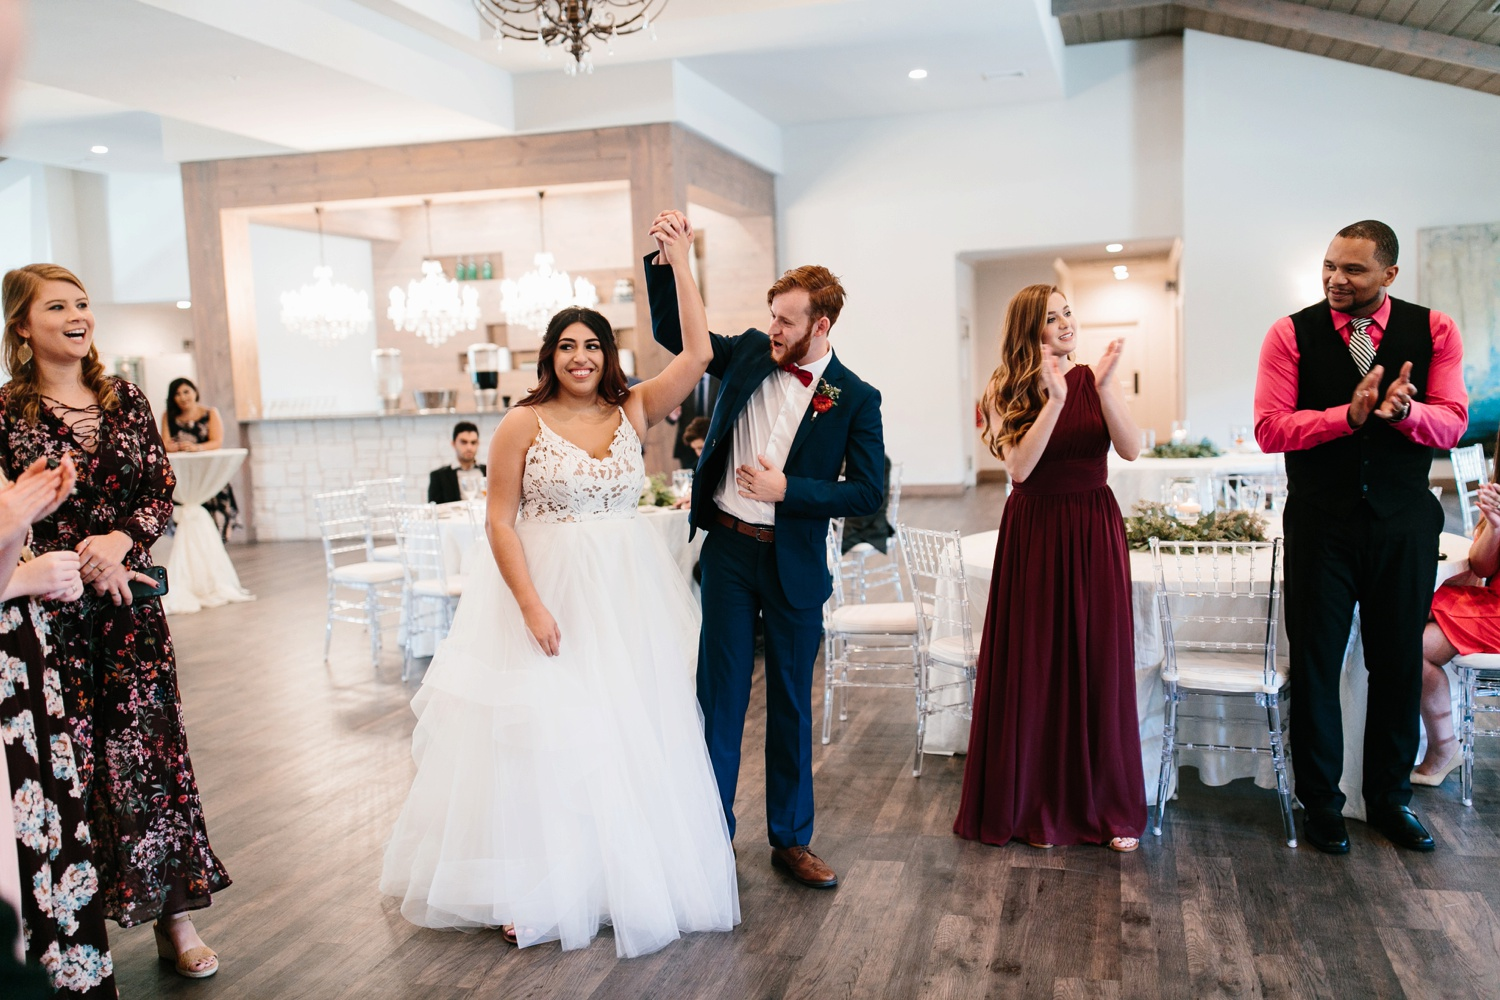 Grant + Lysette | a vibrant, deep burgundy and navy, and mixed metals wedding at Hidden Pines Chapel by North Texas Wedding Photographer Rachel Meagan Photography 185